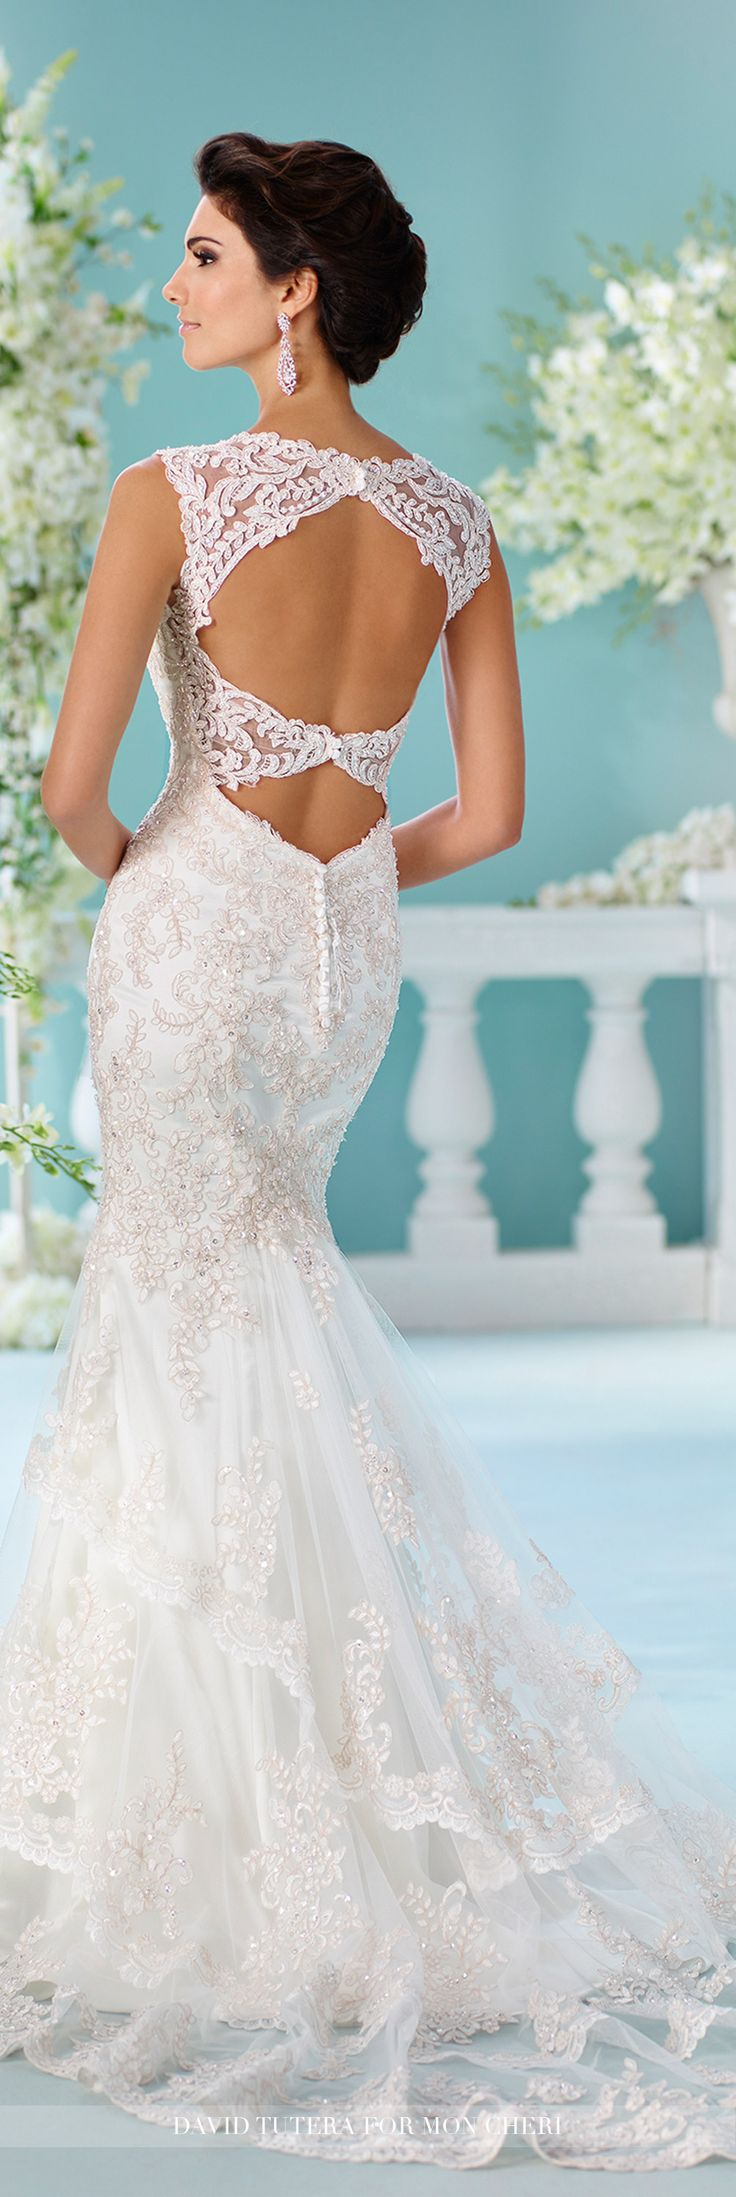 David Tutera for Mon Cheri Fall 2016 Collection - Style No. 216246 Nerida - sleeveless lace wedding dress with keyhole back